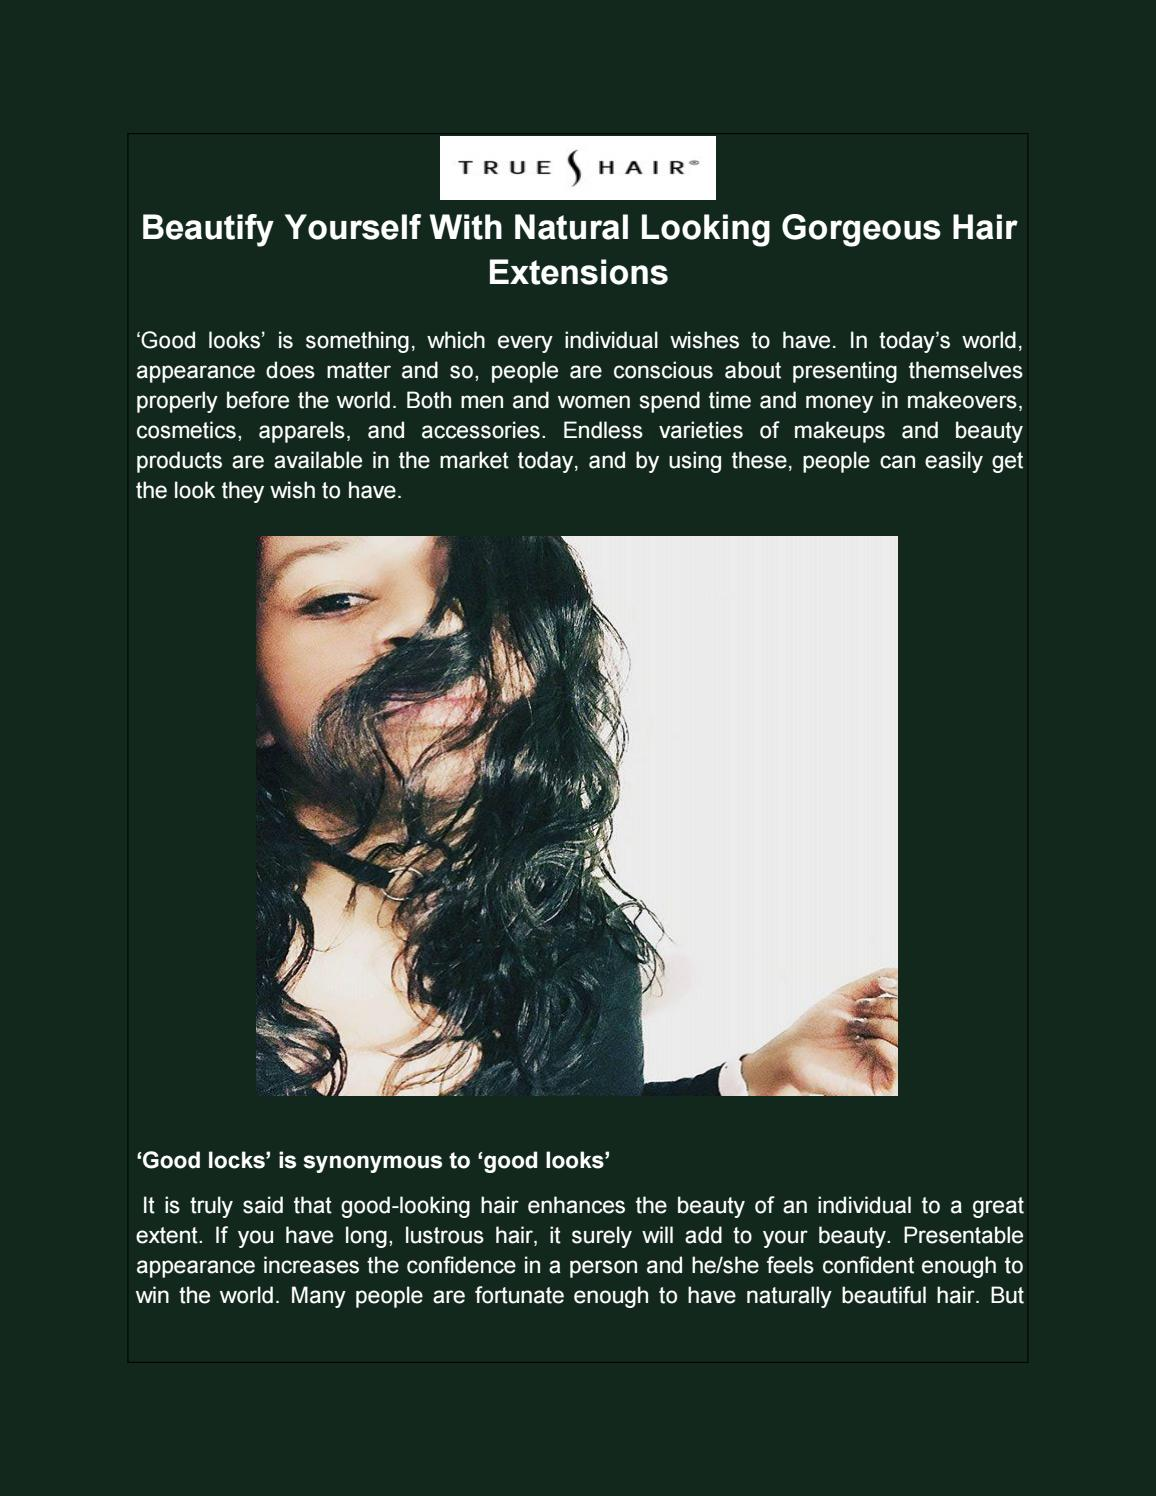 Beautify Yourself With Natural Looking Gorgeous Hair Extensions By